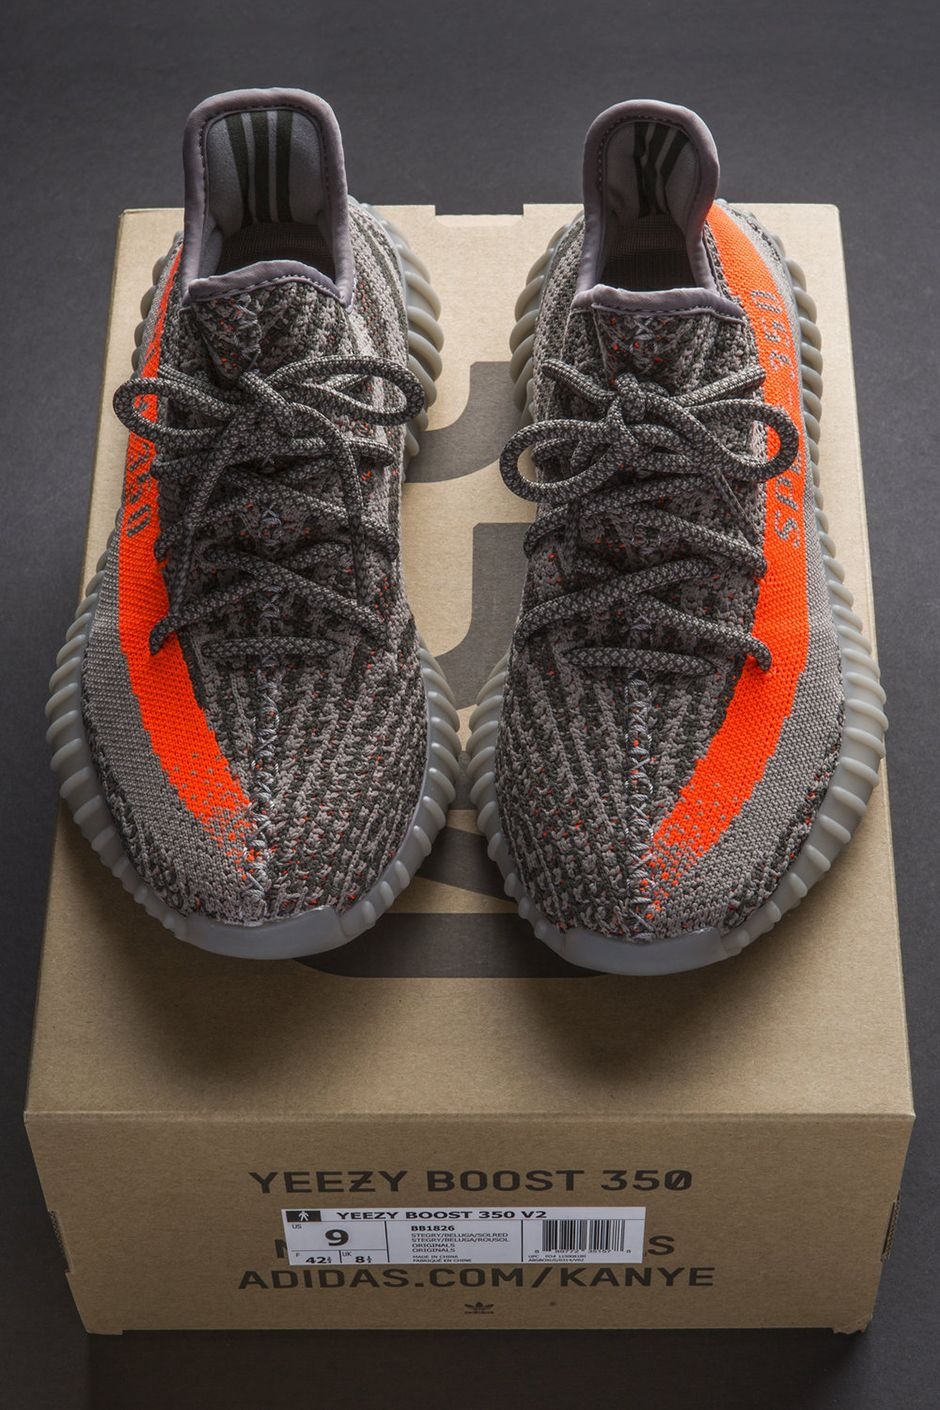 yeezy beluga 2.0 wallpaper k n